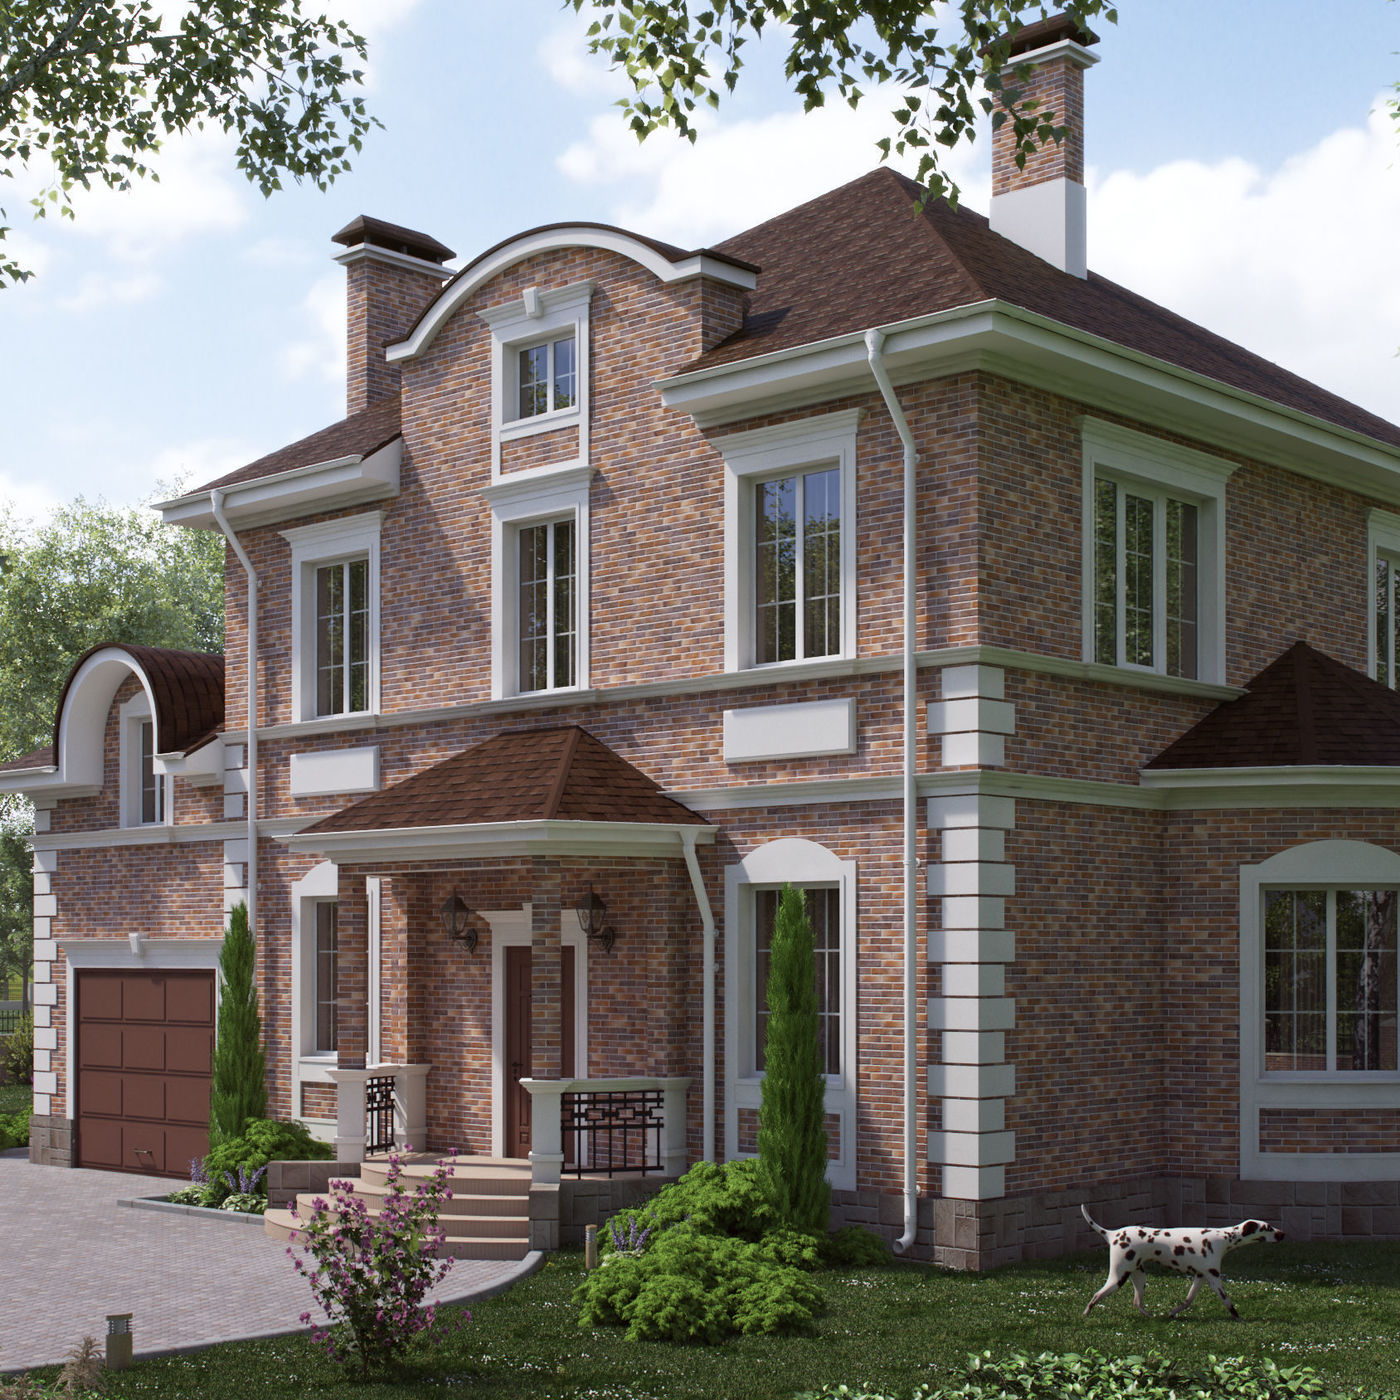 Visualization of a private house